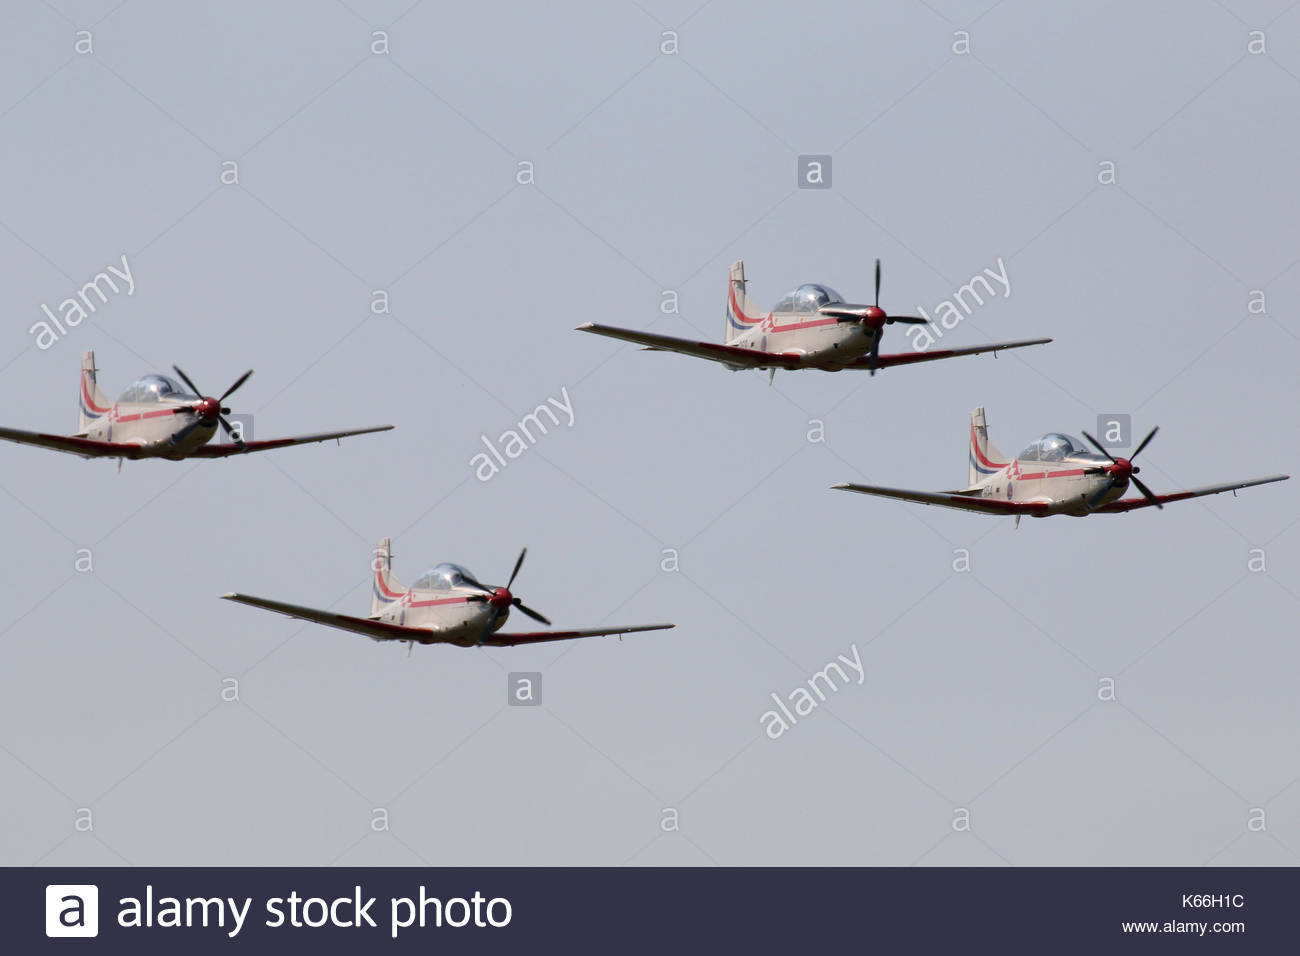 Wings of Storm - aerobatic team - air show Sisak Croatia - Stock Image